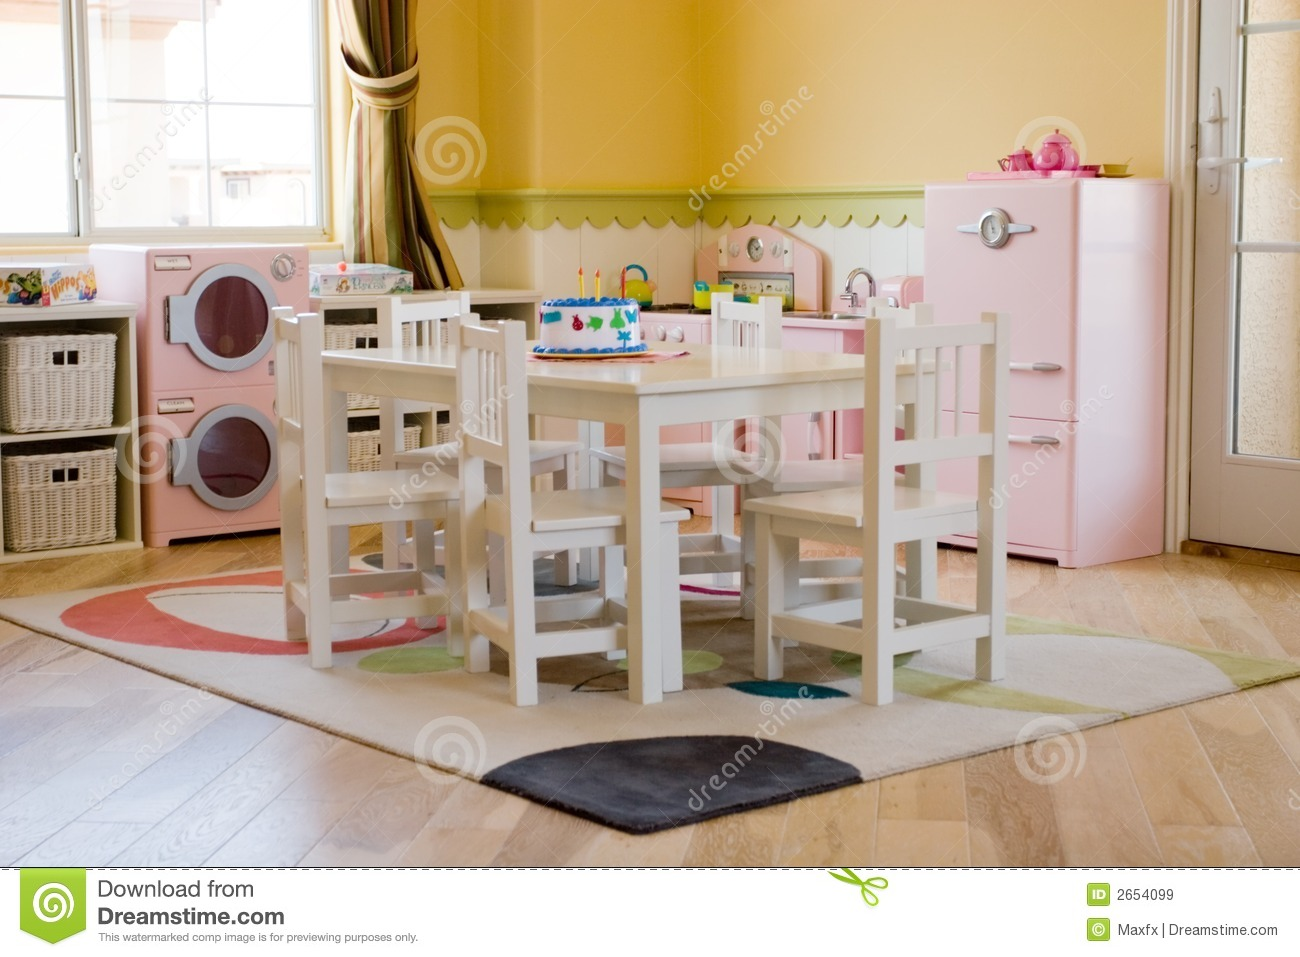 la salle de jeux des enfants image stock image du maison fille 2654099. Black Bedroom Furniture Sets. Home Design Ideas